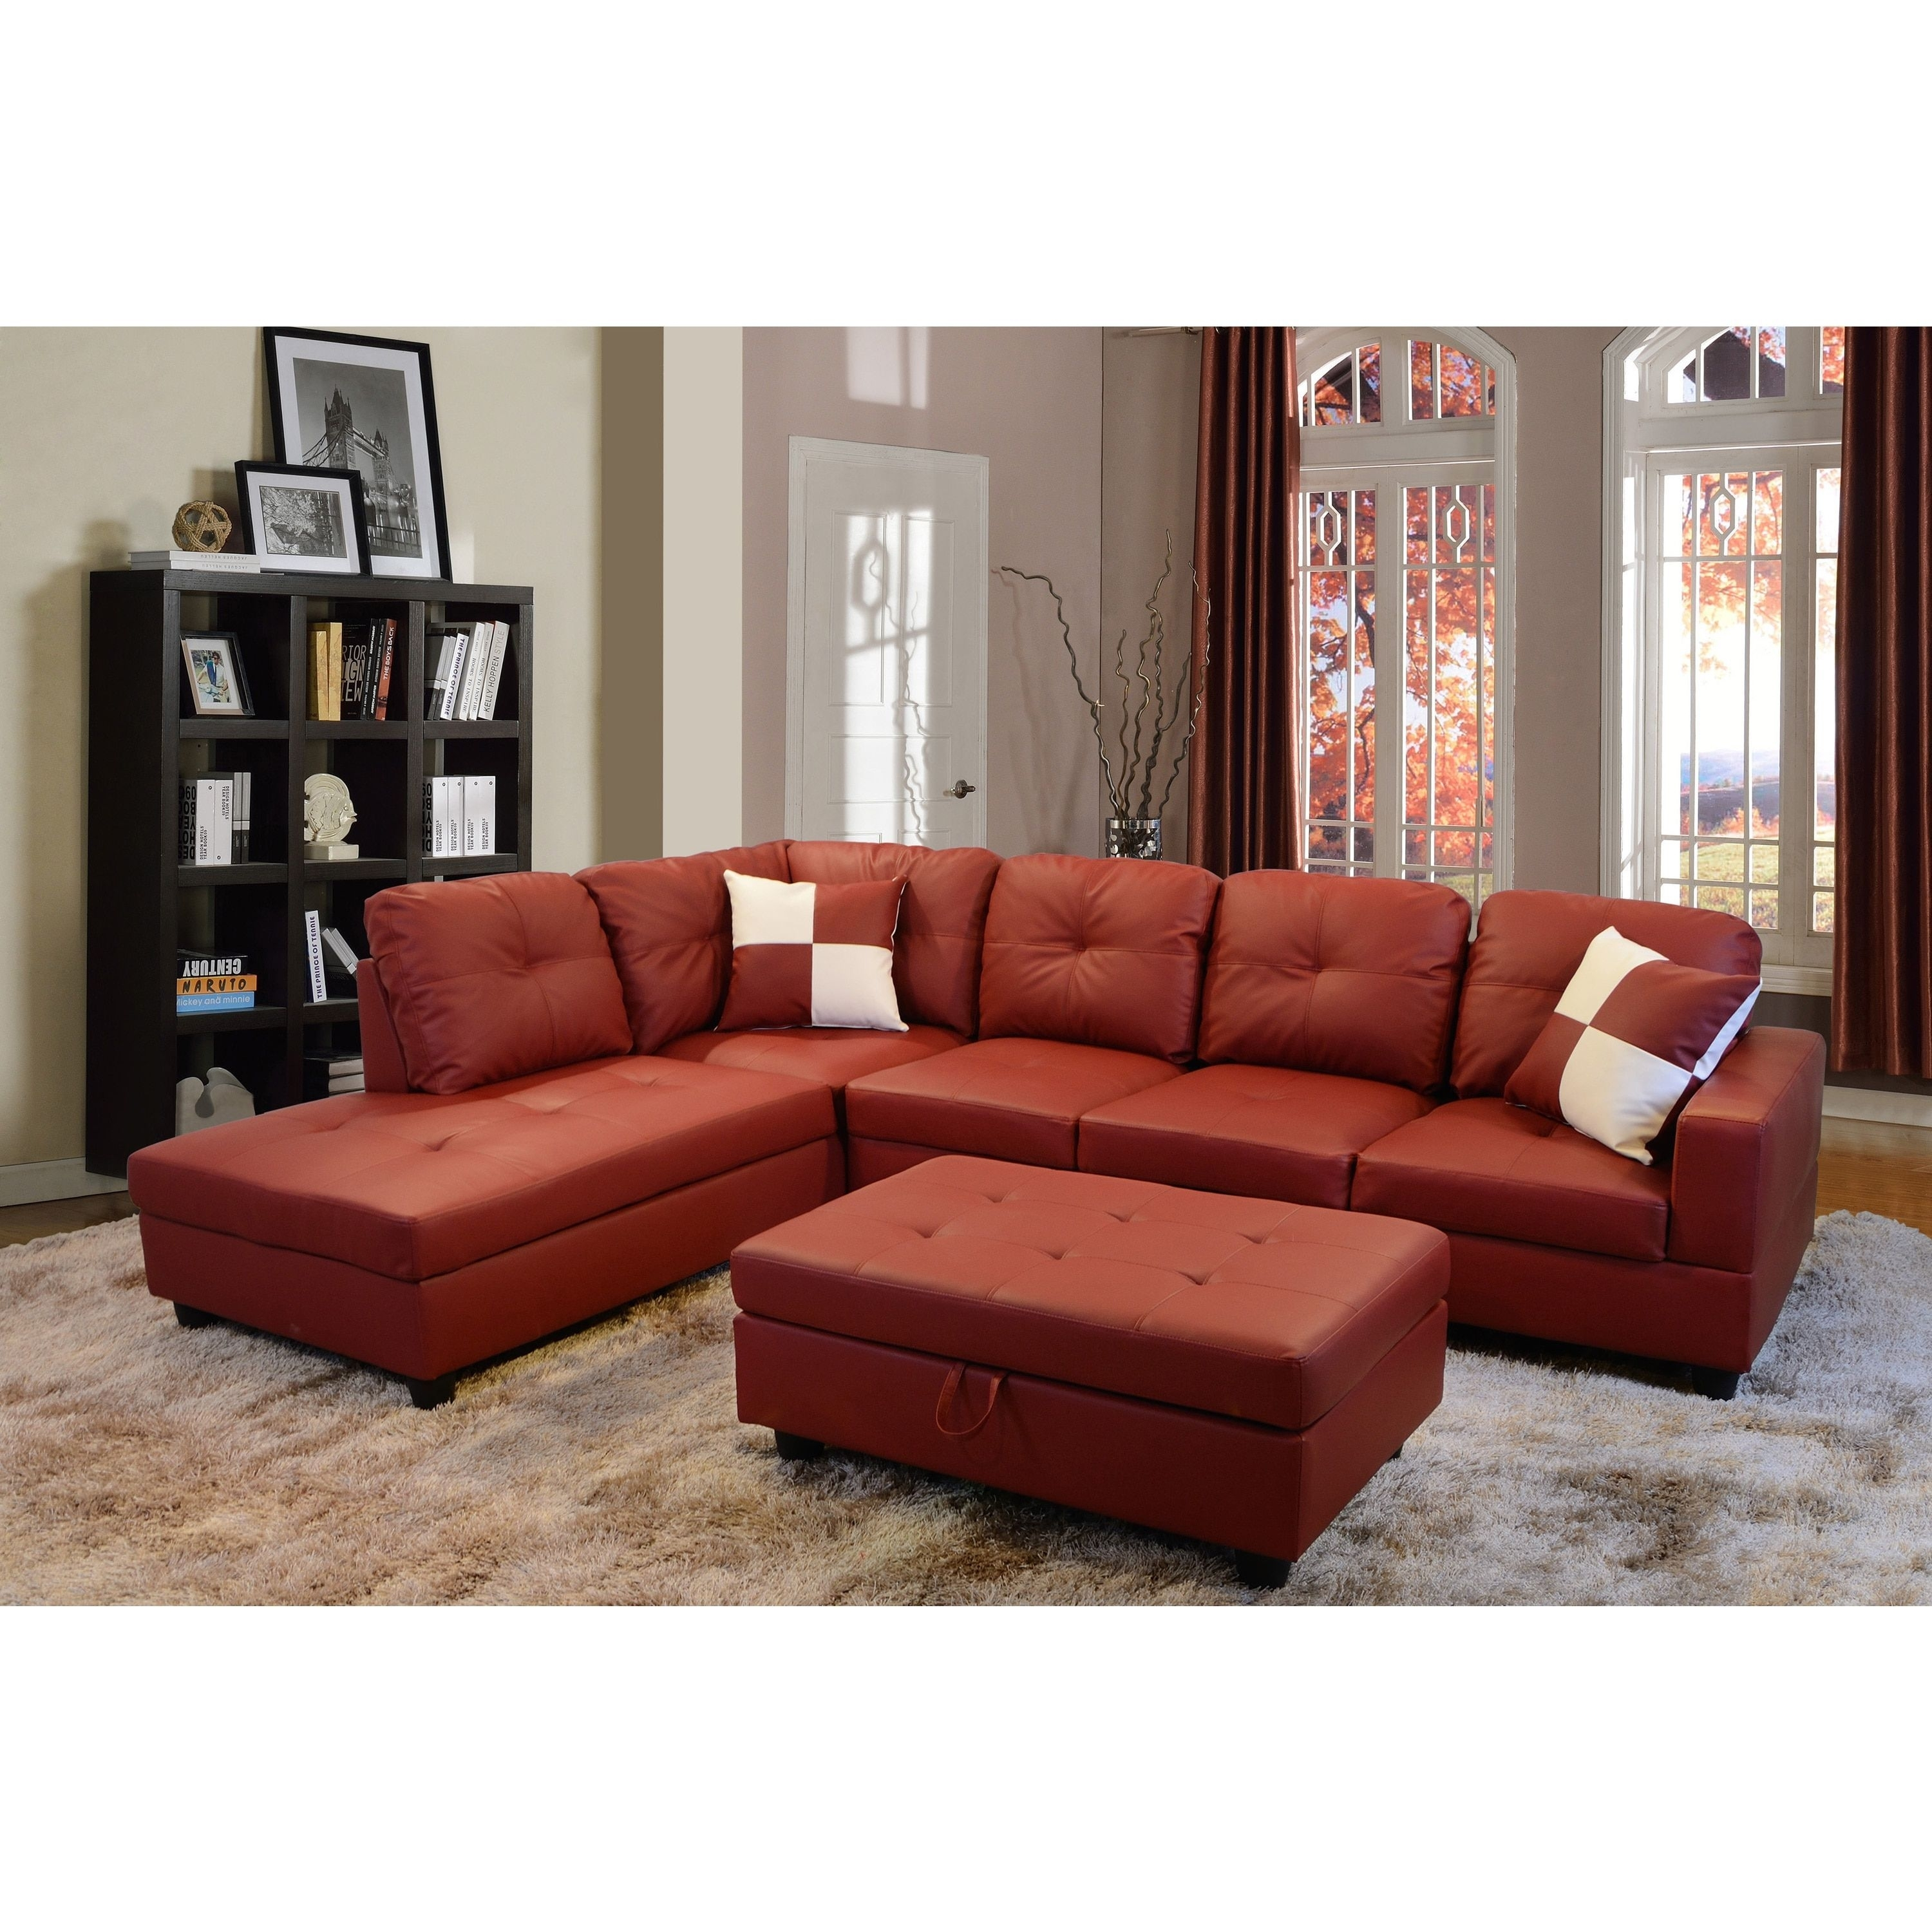 Delma 3-Piece Red Faux Leather Furniture Set (Delma 3-Pc Faux in Tenny Dark Grey 2 Piece Right Facing Chaise Sectionals With 2 Headrest (Image 14 of 30)